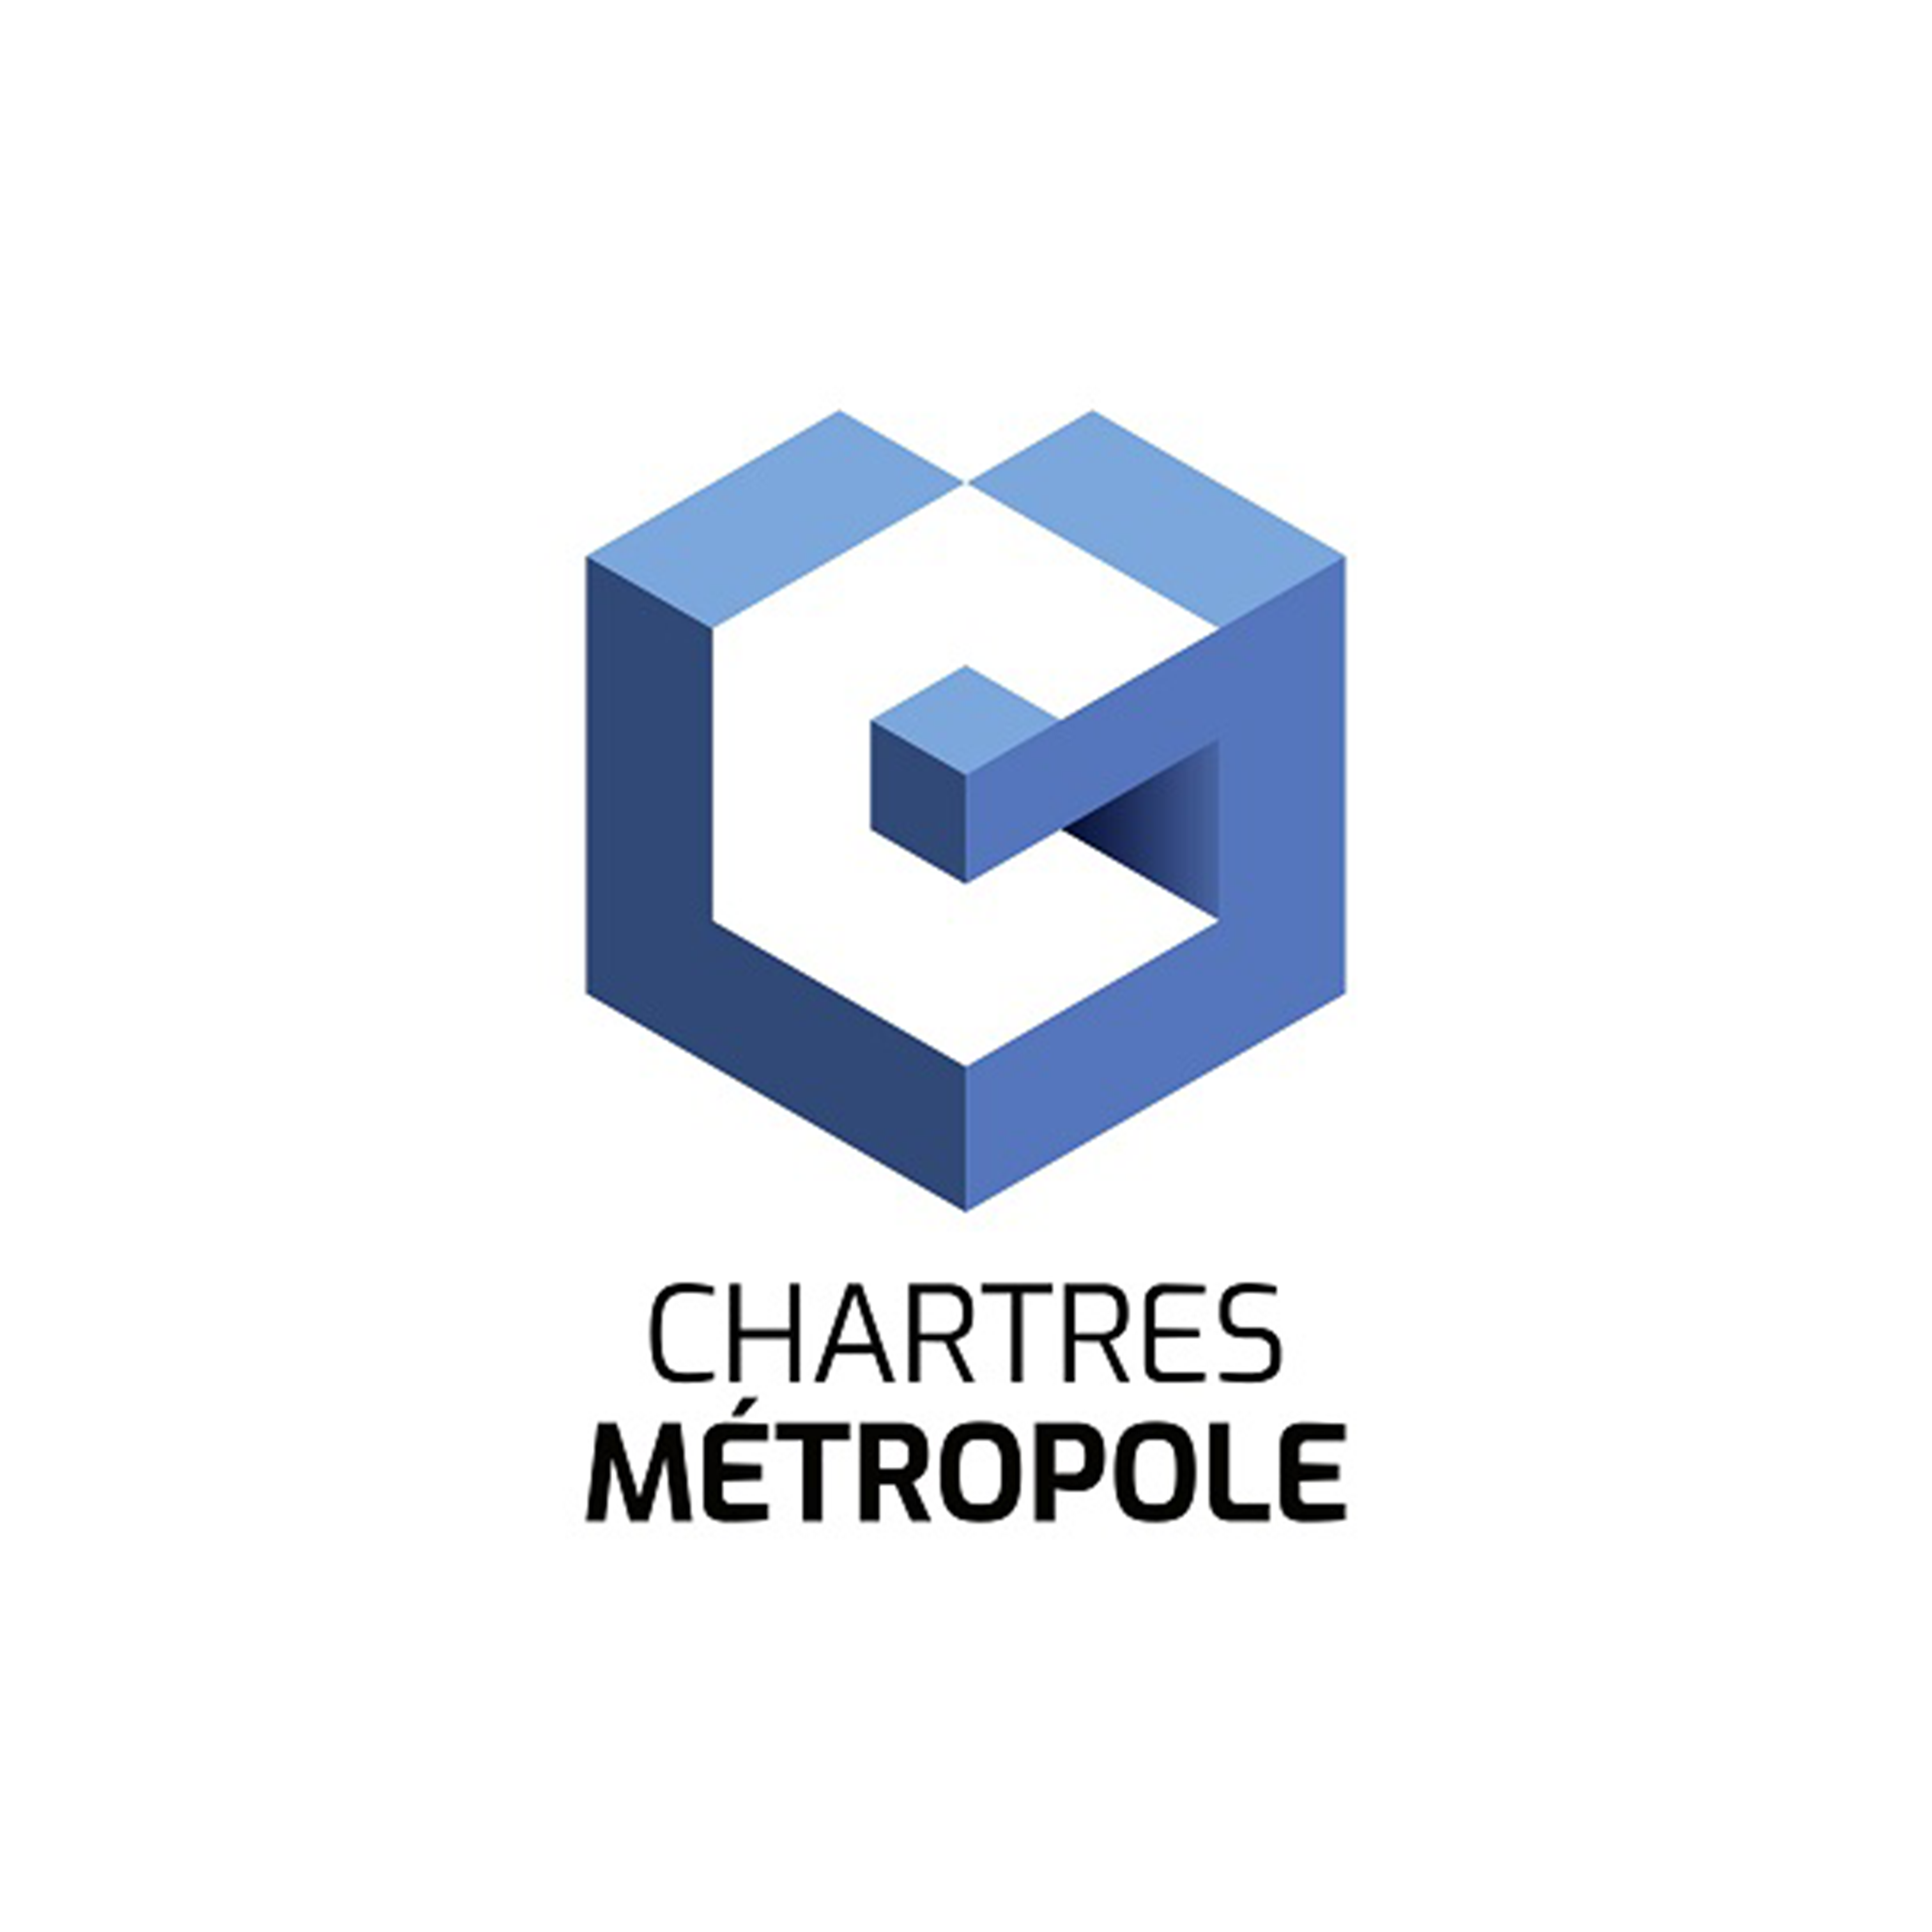 chartres-metropole